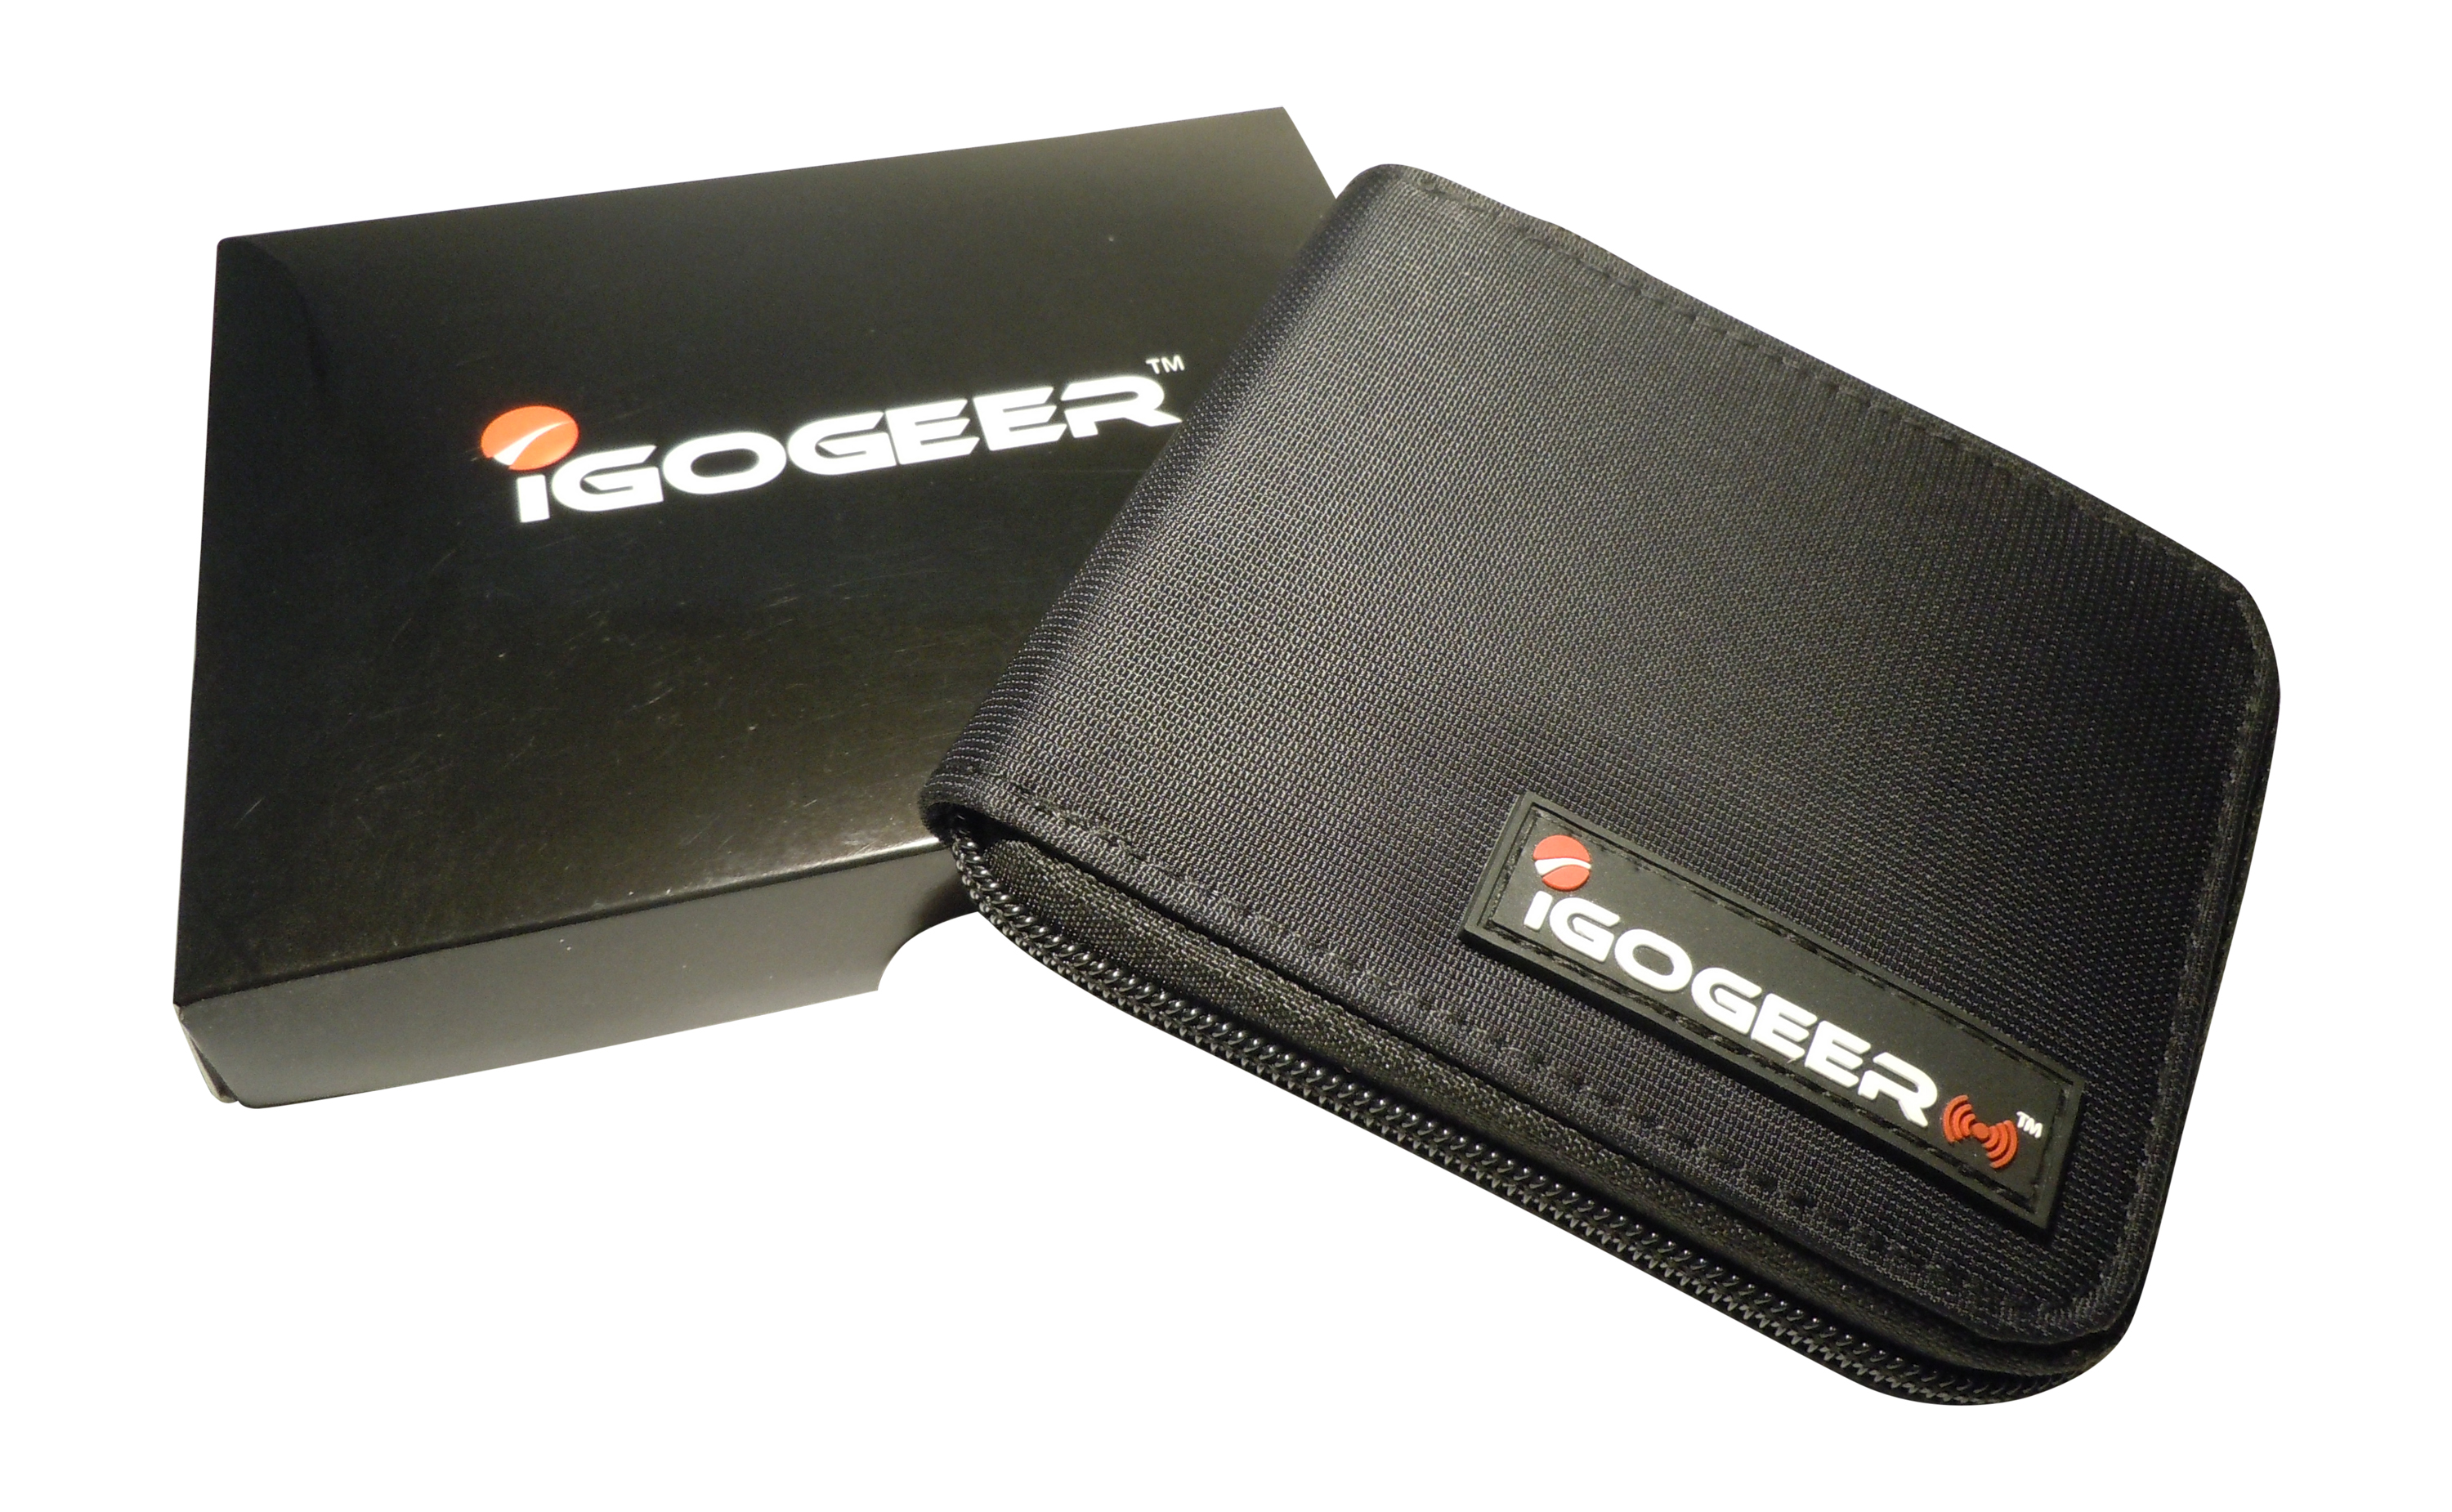 93f308f102eb Igogeer.com - men pocket wallet M05 with Rfid blocking - front & gift box